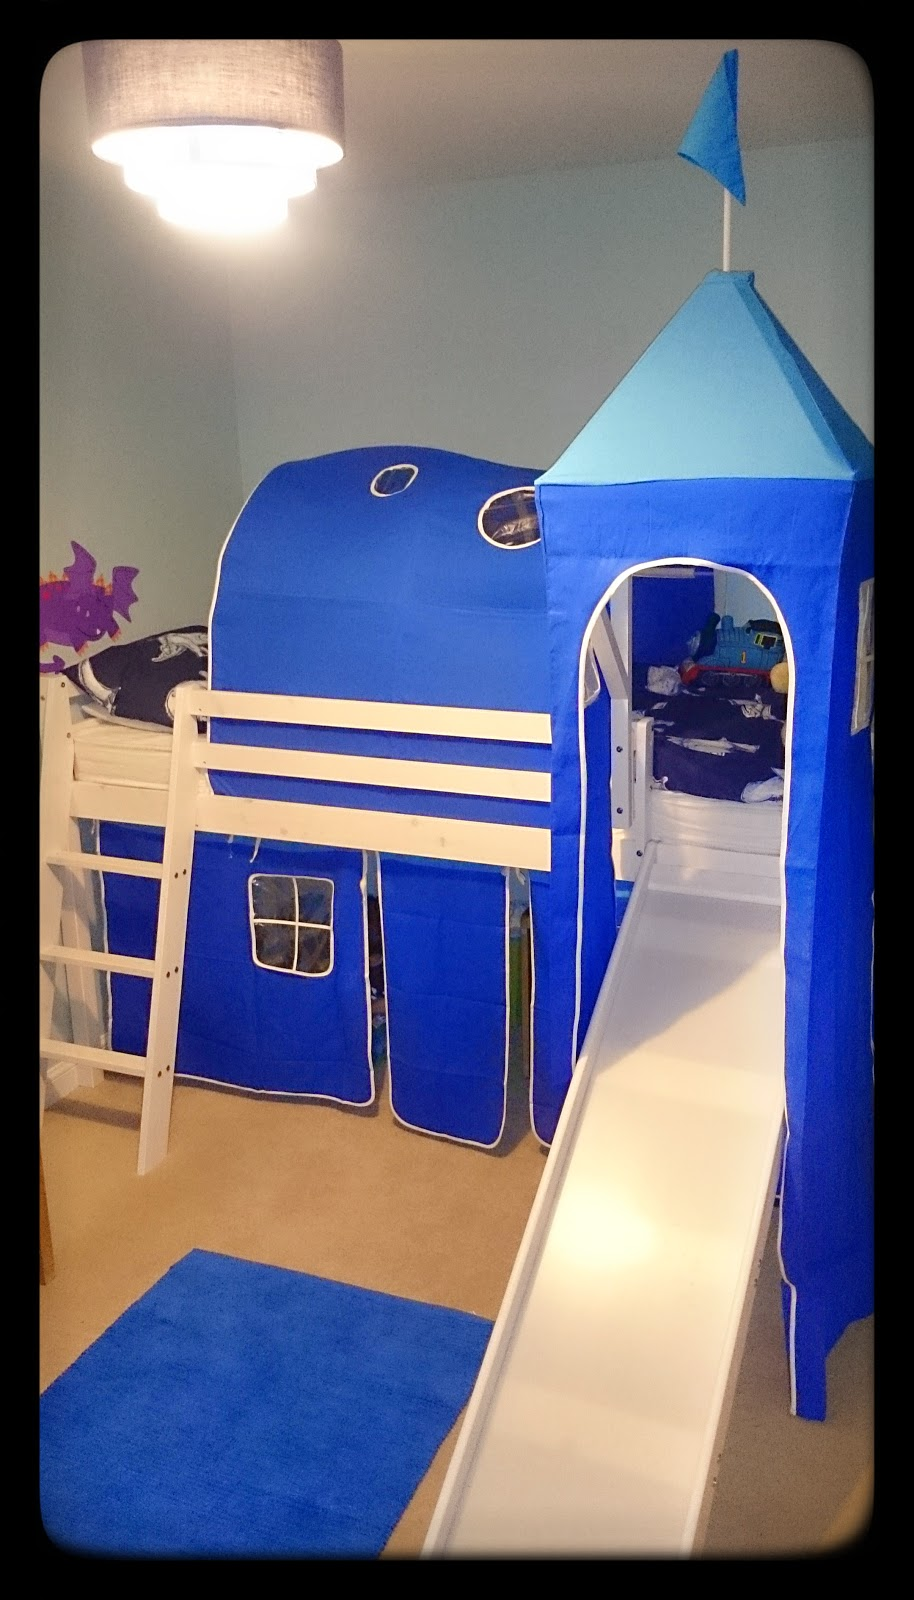 http://www.noaandnani.co.uk/cabin-beds-c1/cabin-bed-with-slide-c15